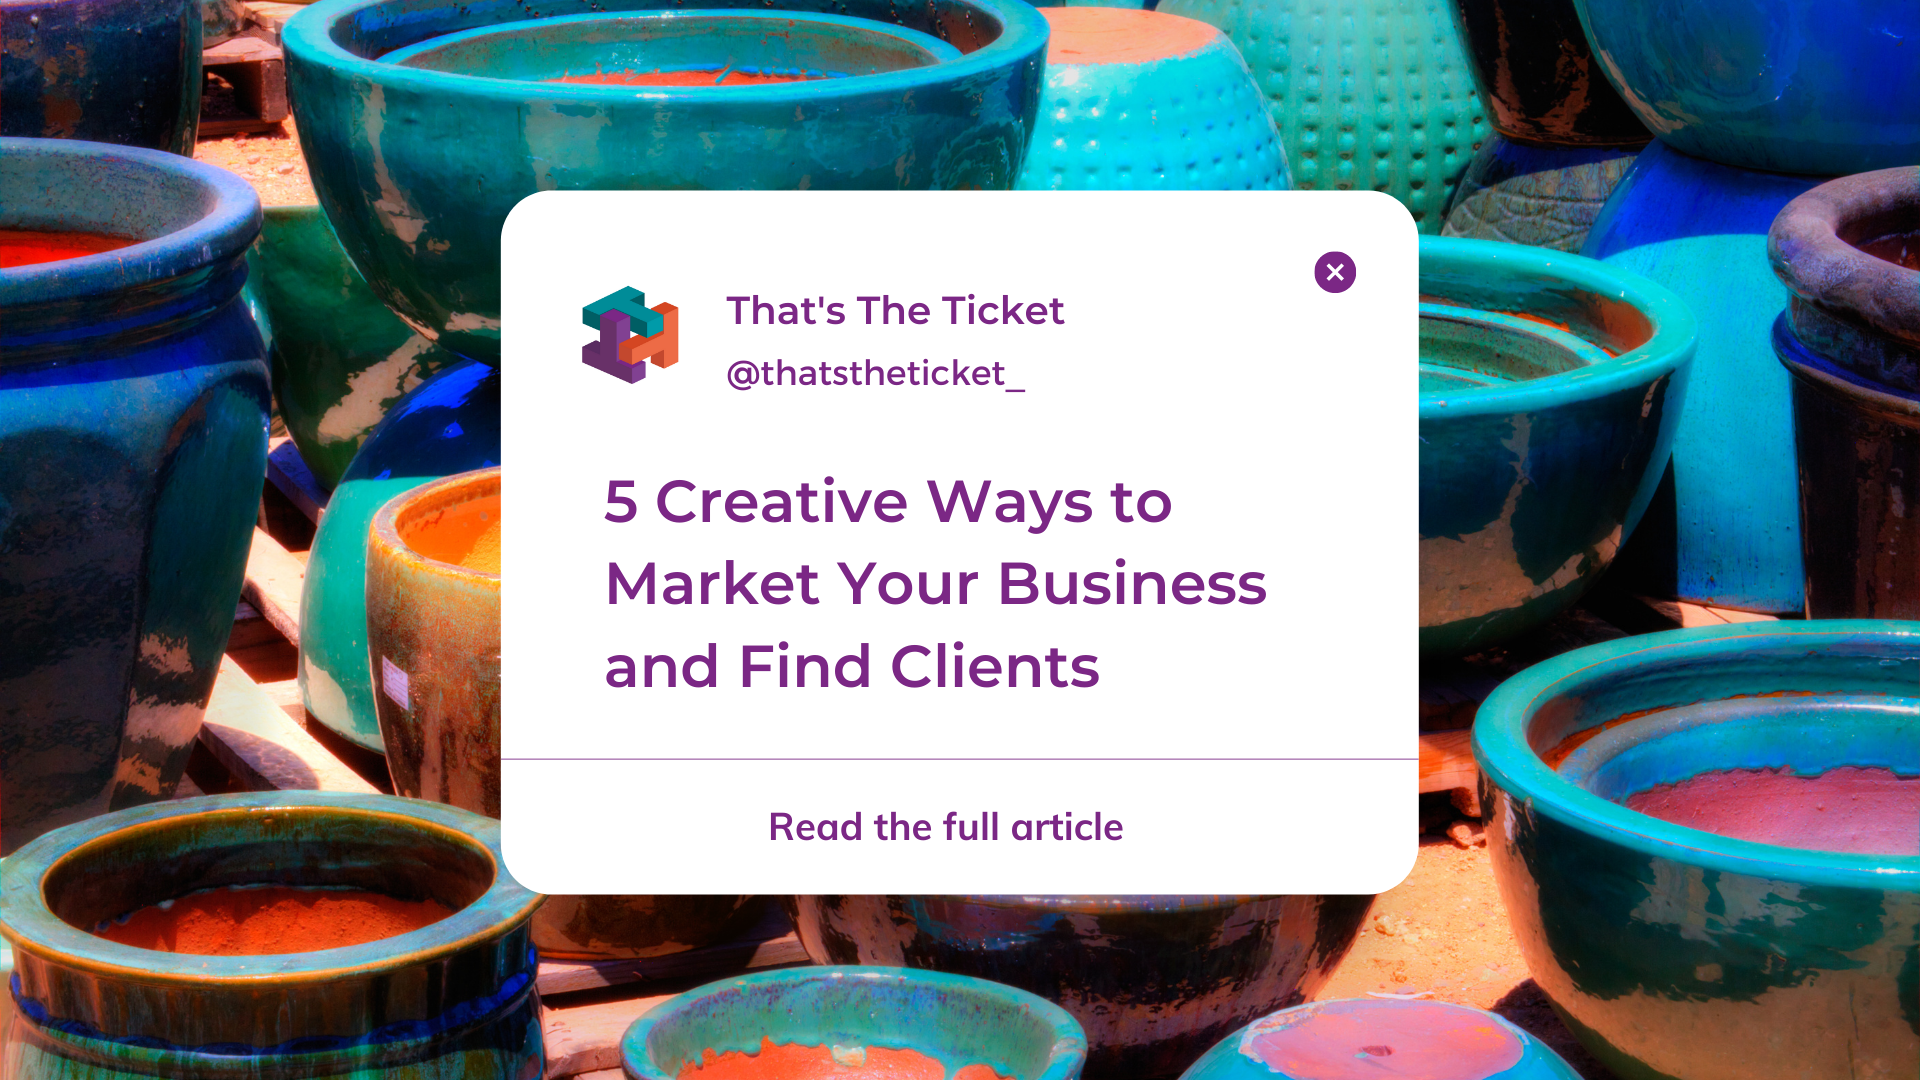 5 creative ways to market your business and find clients